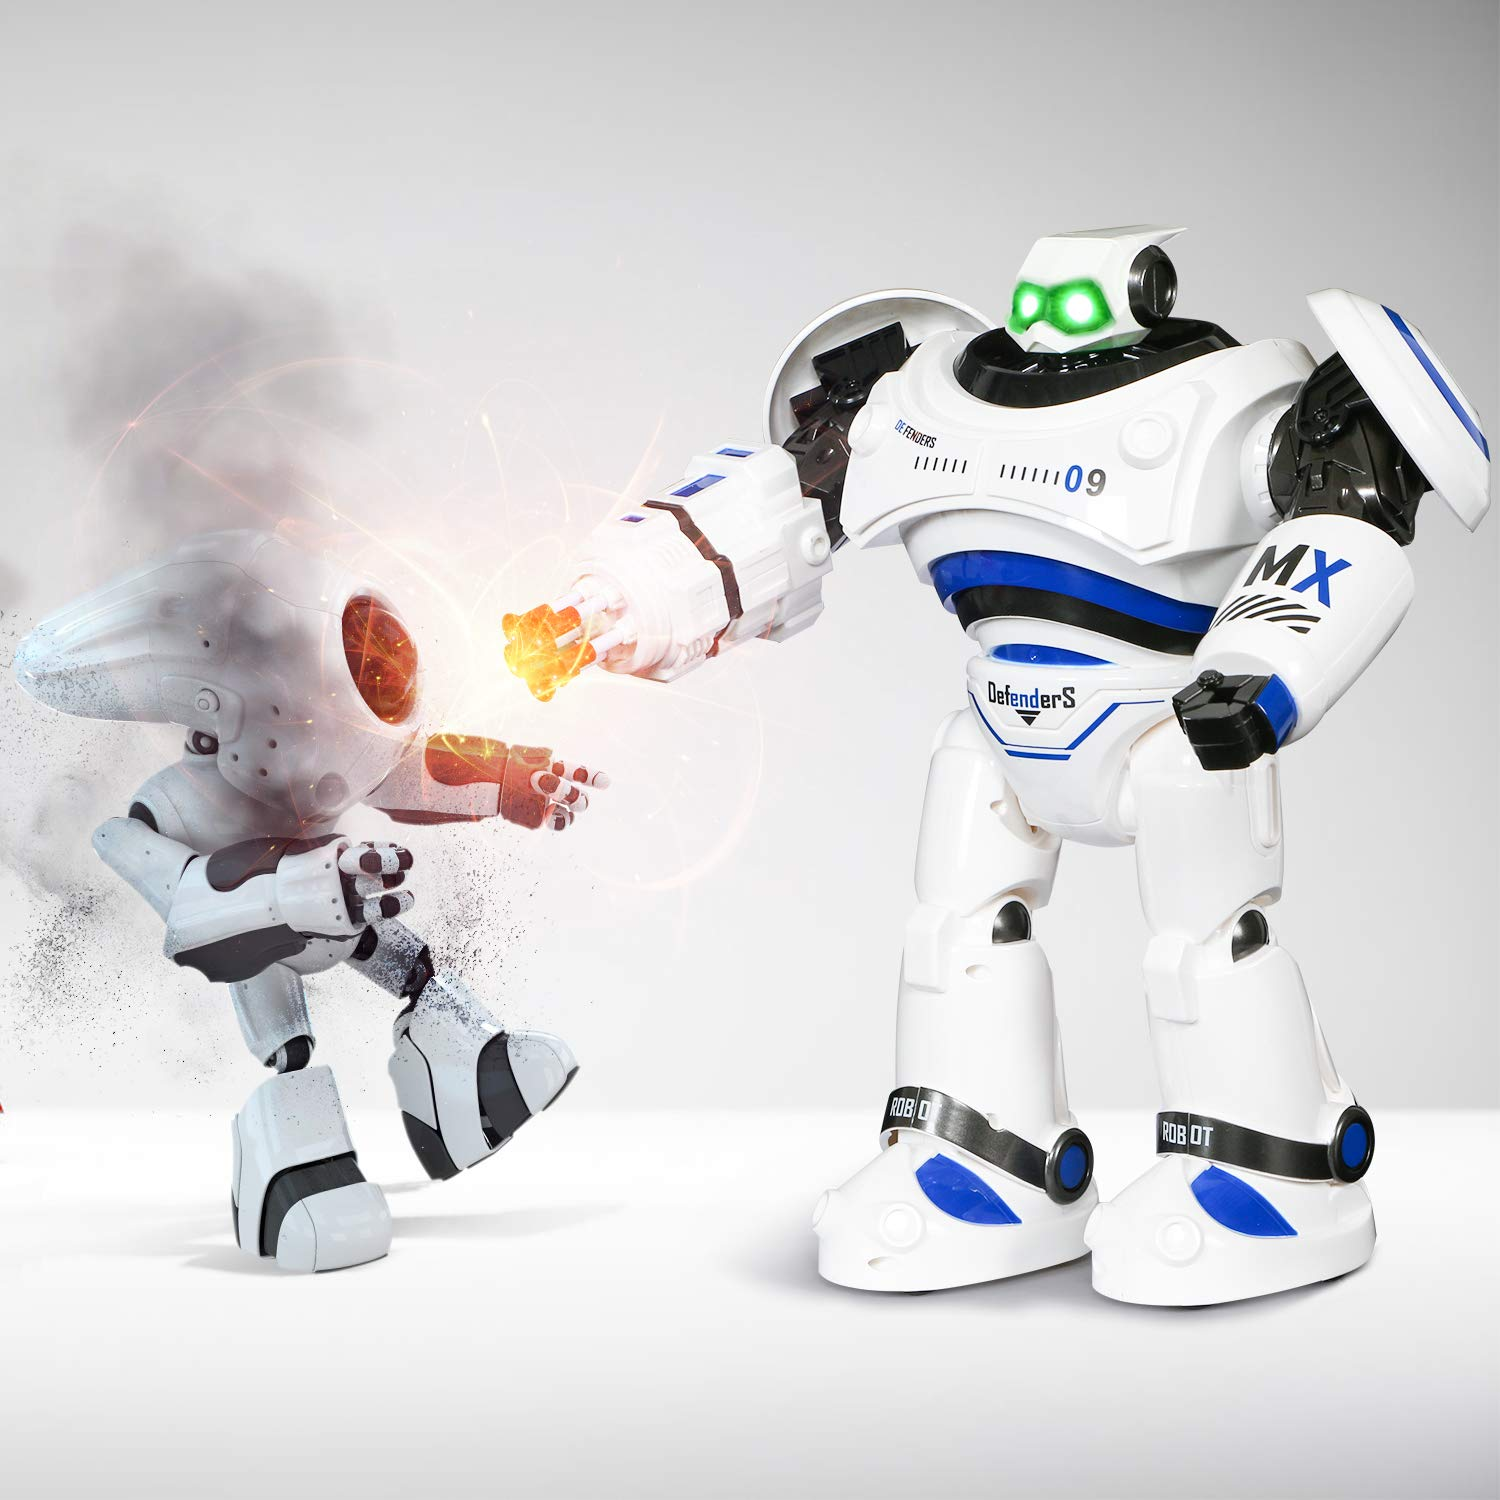 SGILE RC Robot Toy, Programmable Intelligent Walk Sing Dance Robot for Kids Gift Present, White by SGILE (Image #3)